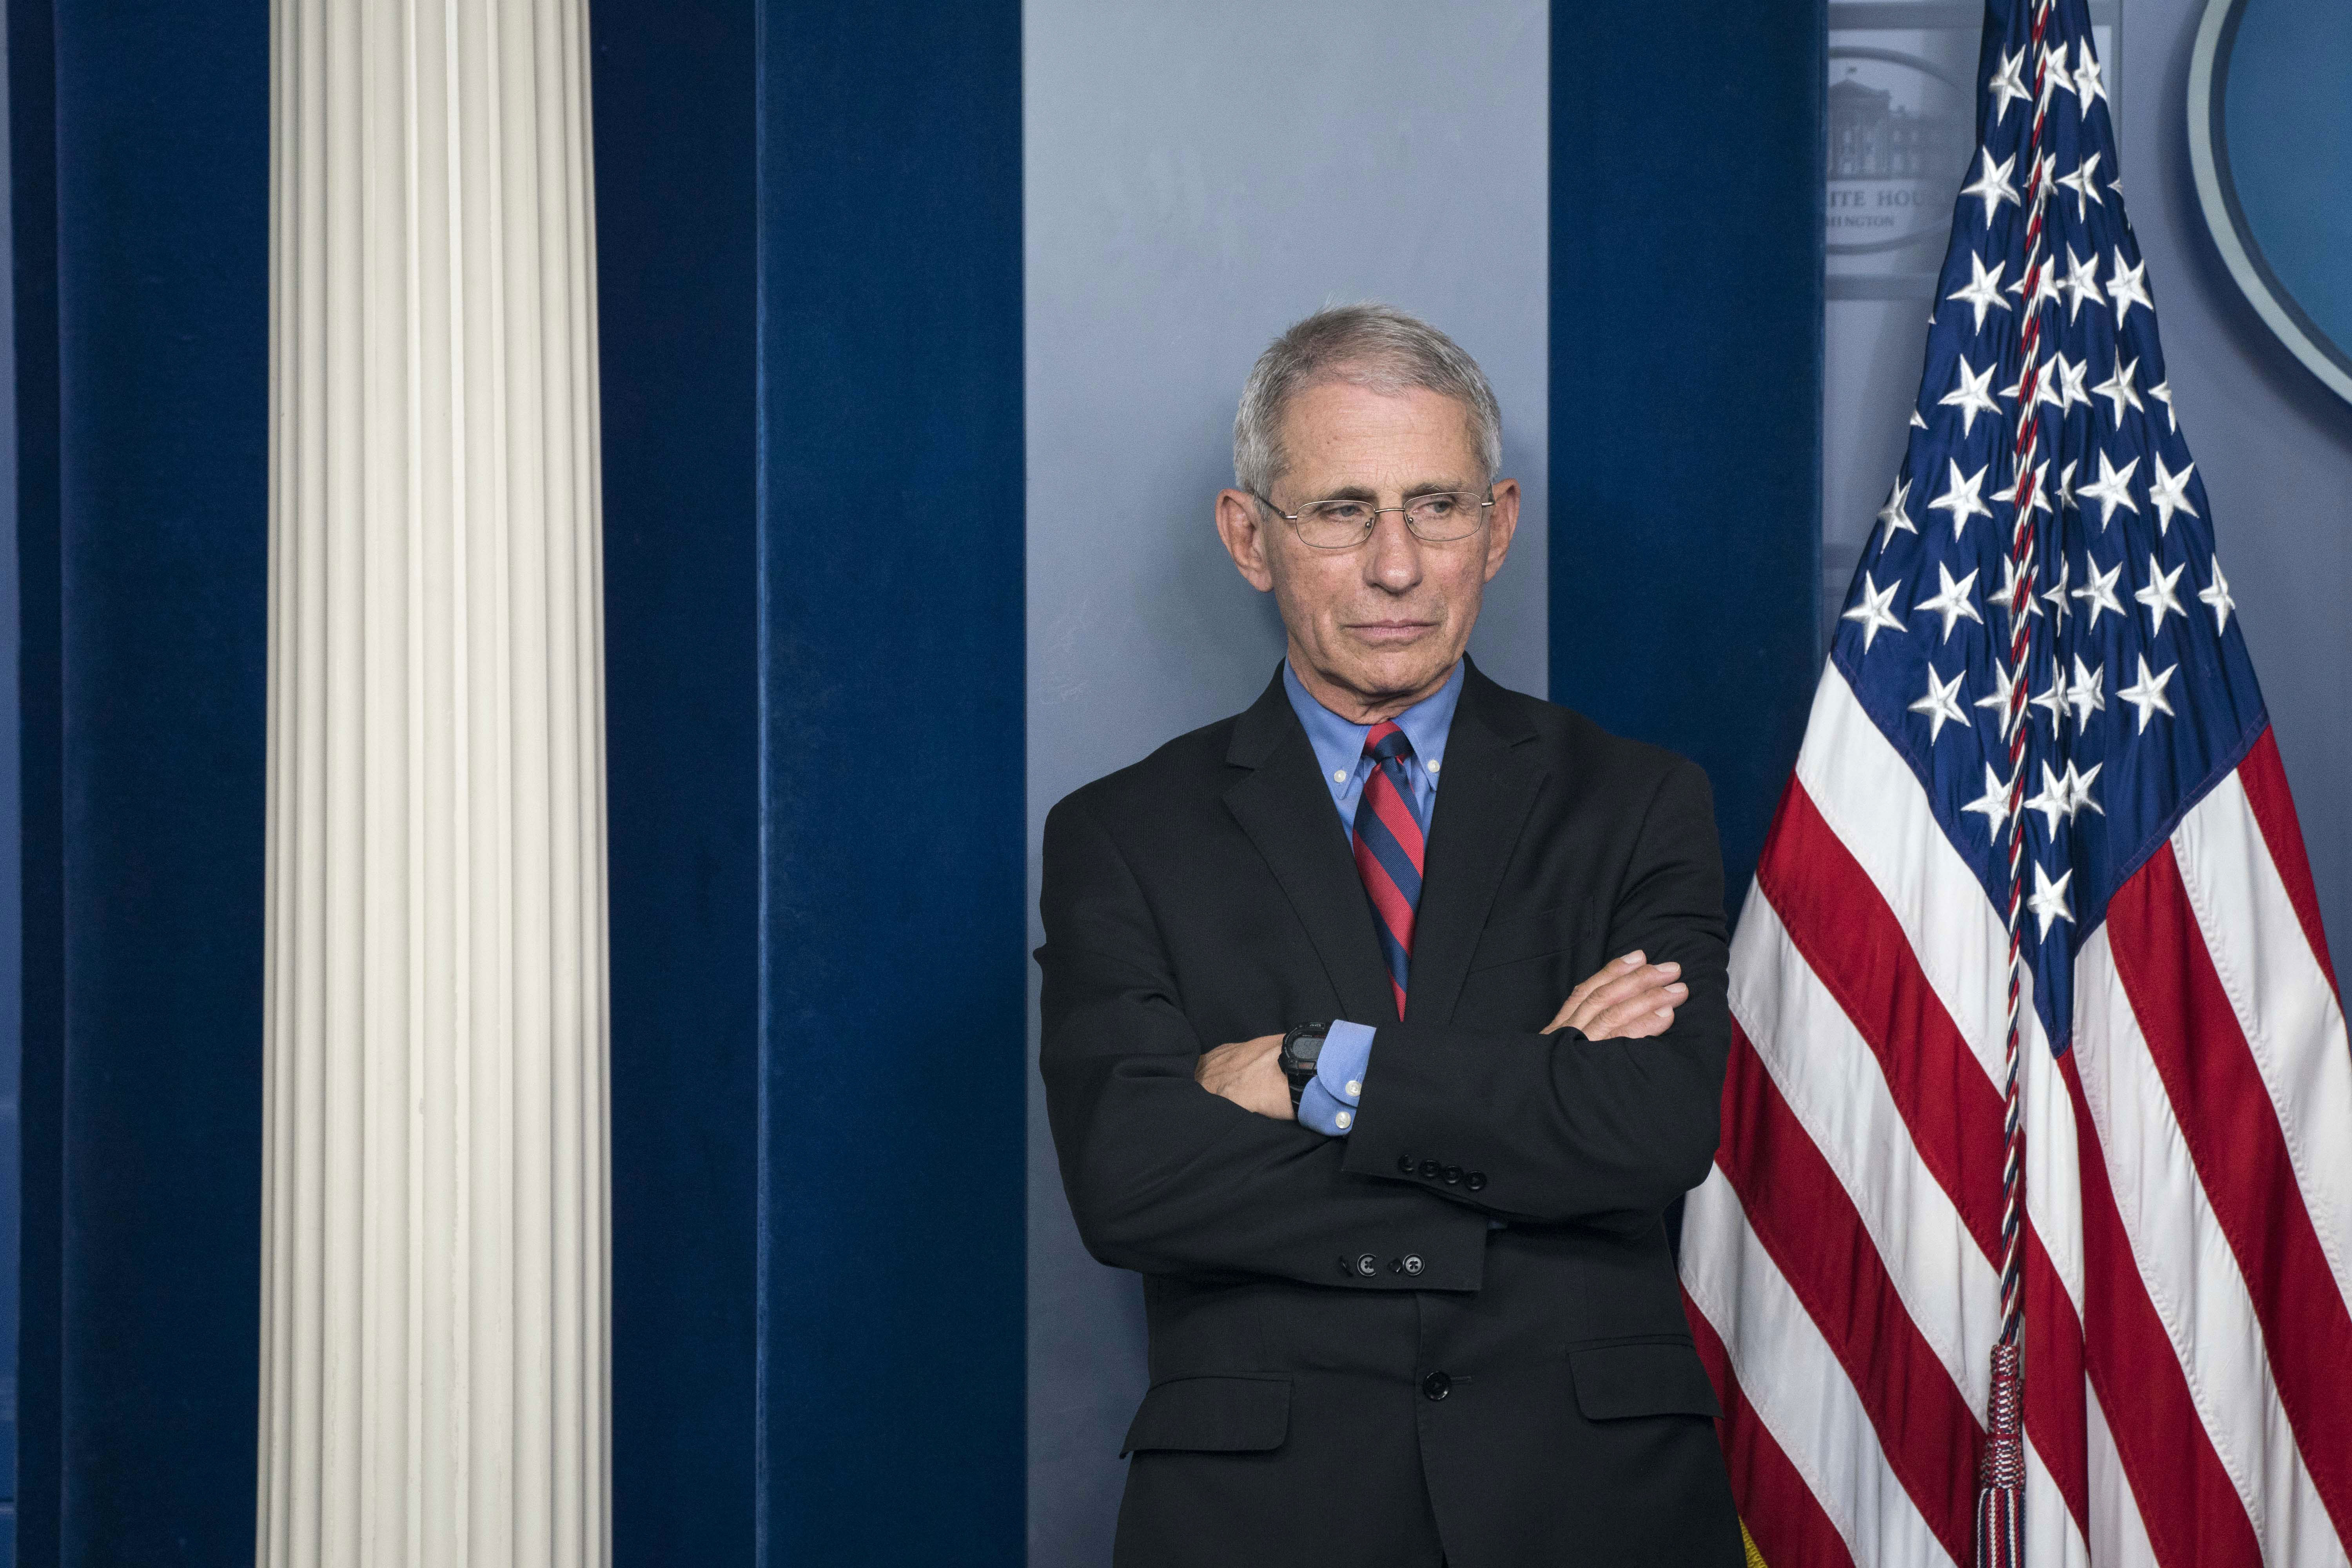 Dr. Anthony Fauci attends a news conference at the White House on March 25.